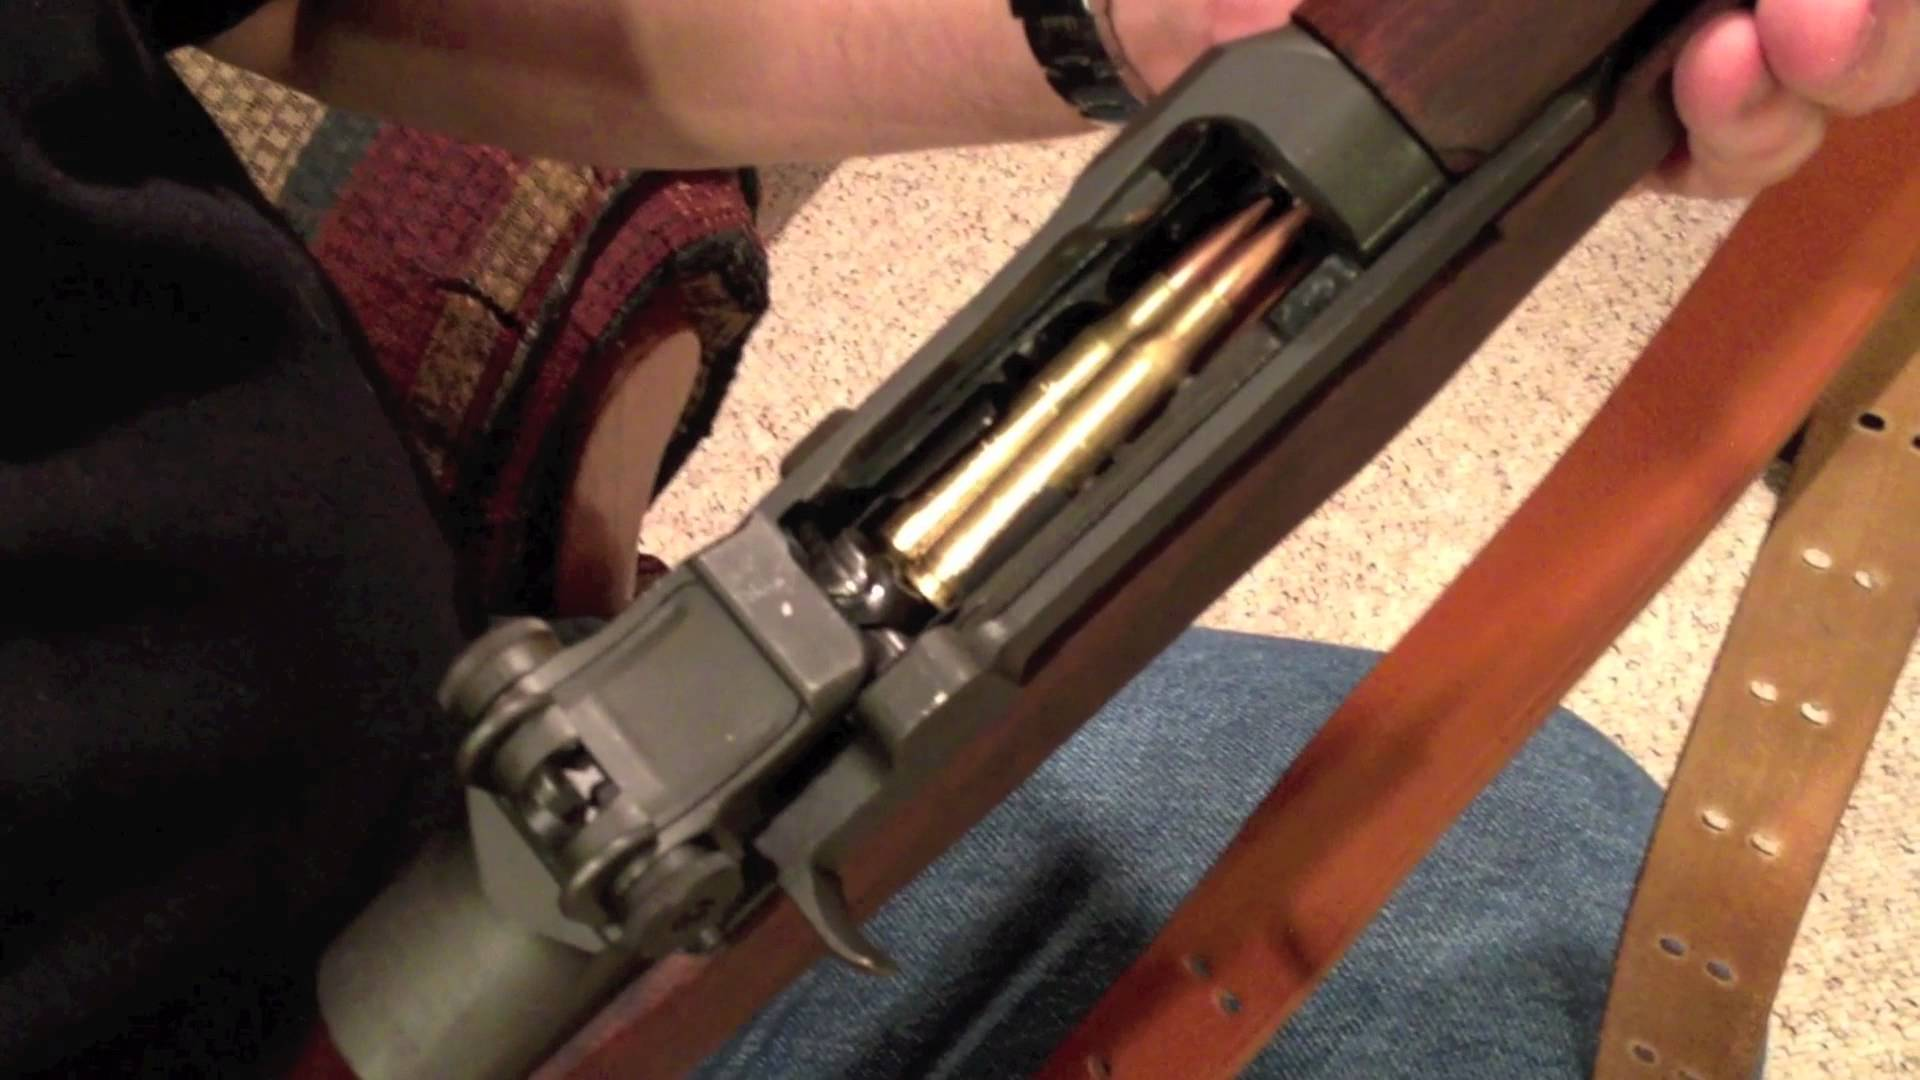 How to Load a M1 Garand - One Handed - And Function Demo with Ping Sound